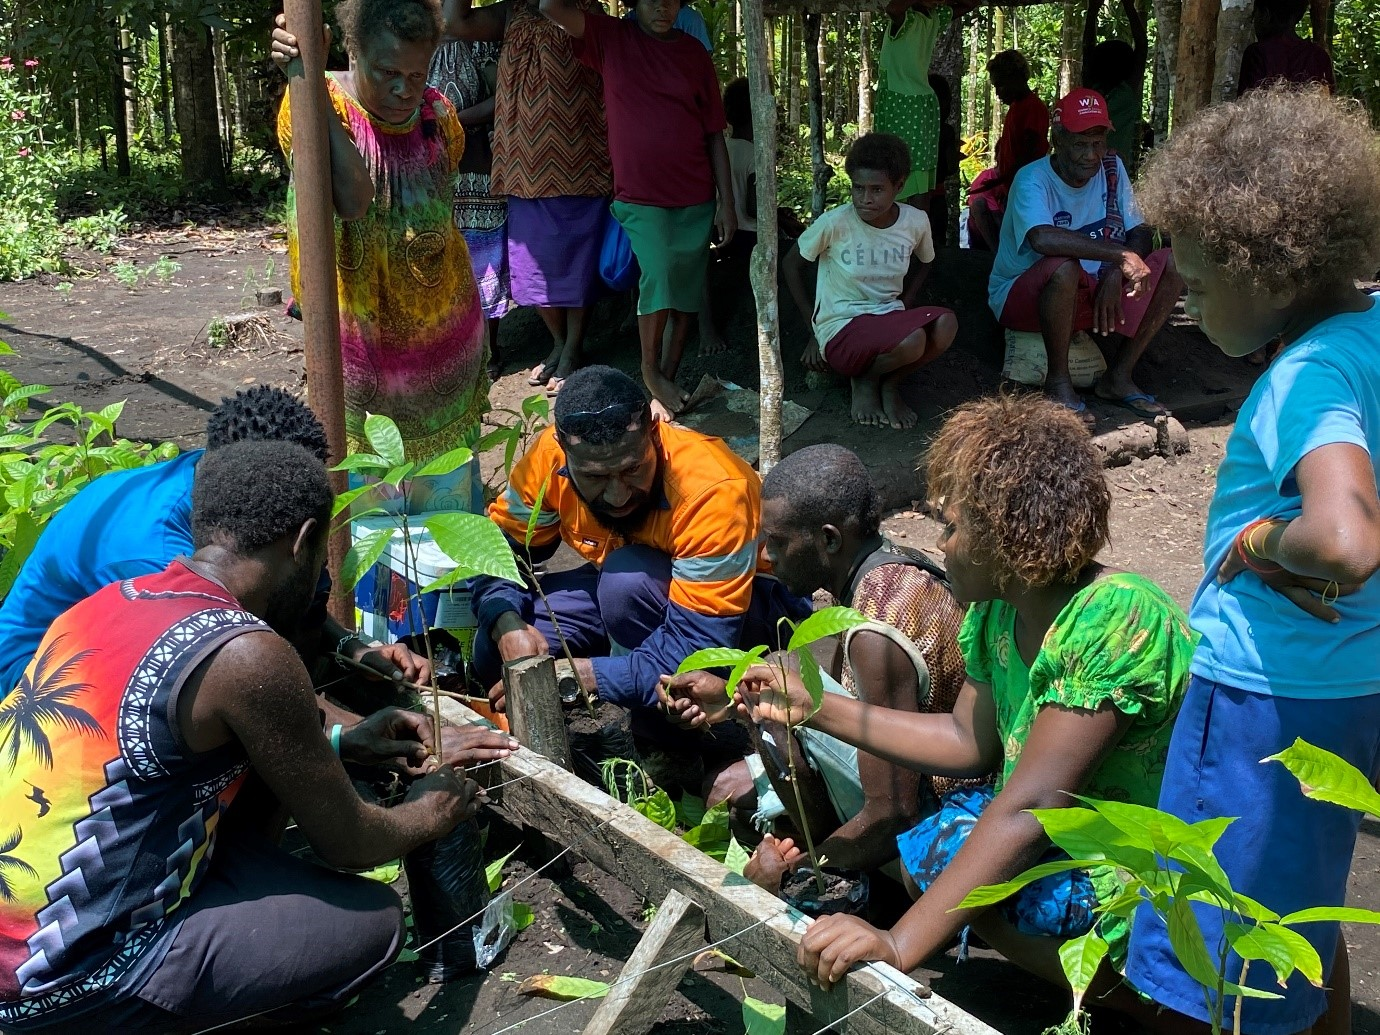 A taste of Tabar - New Ireland's first chocolate